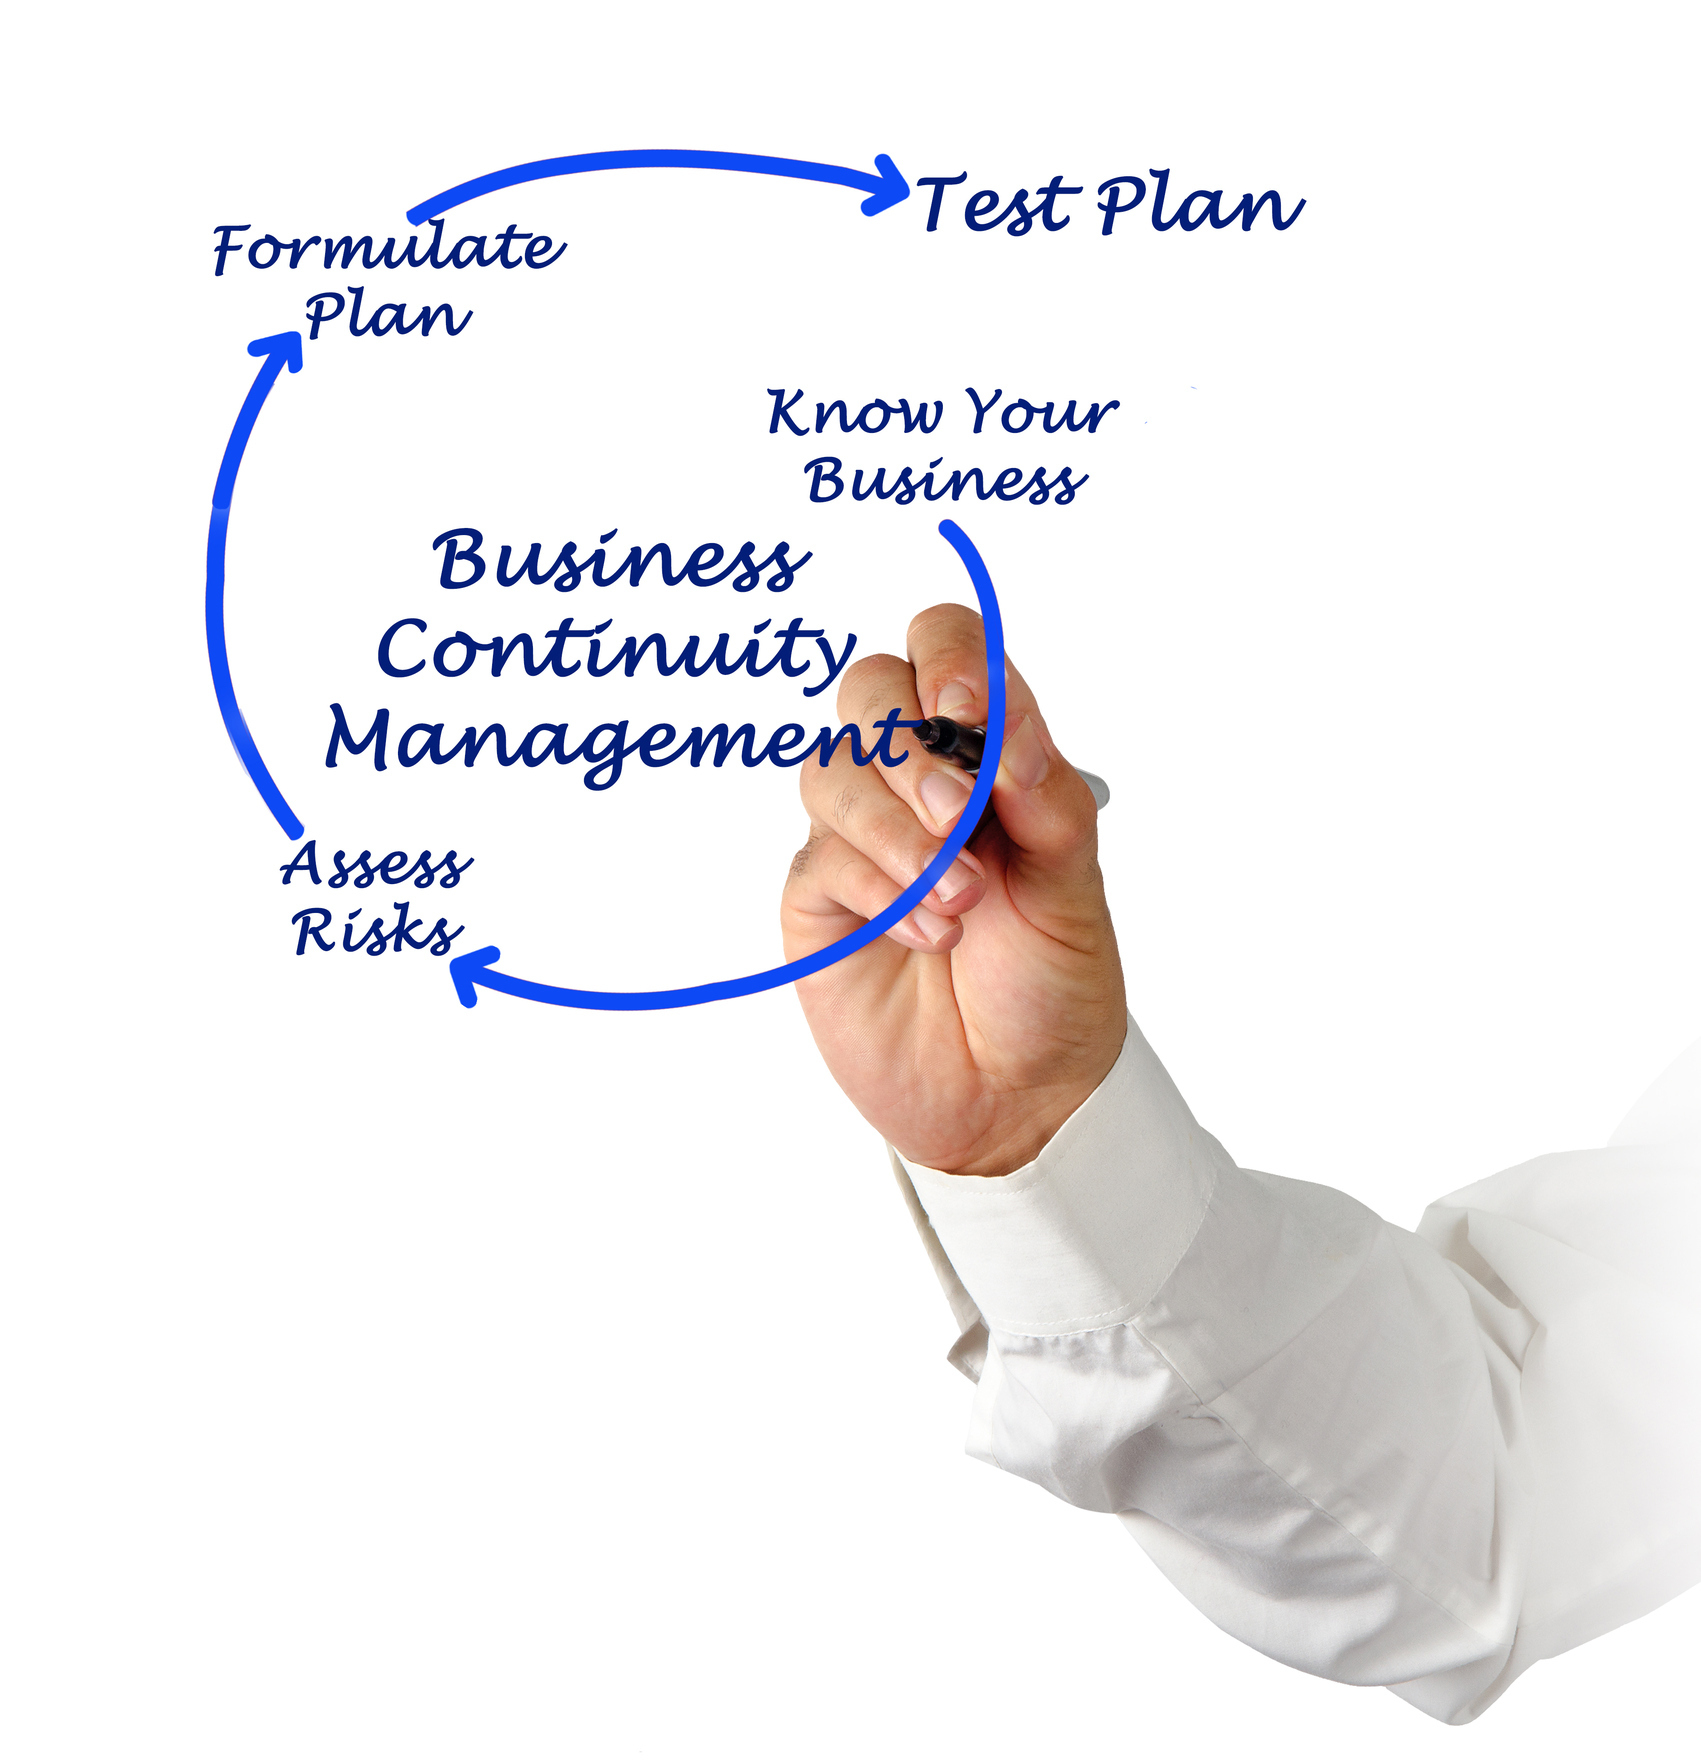 Business continuity management cycle, Know your business, Assess risks, Plan.